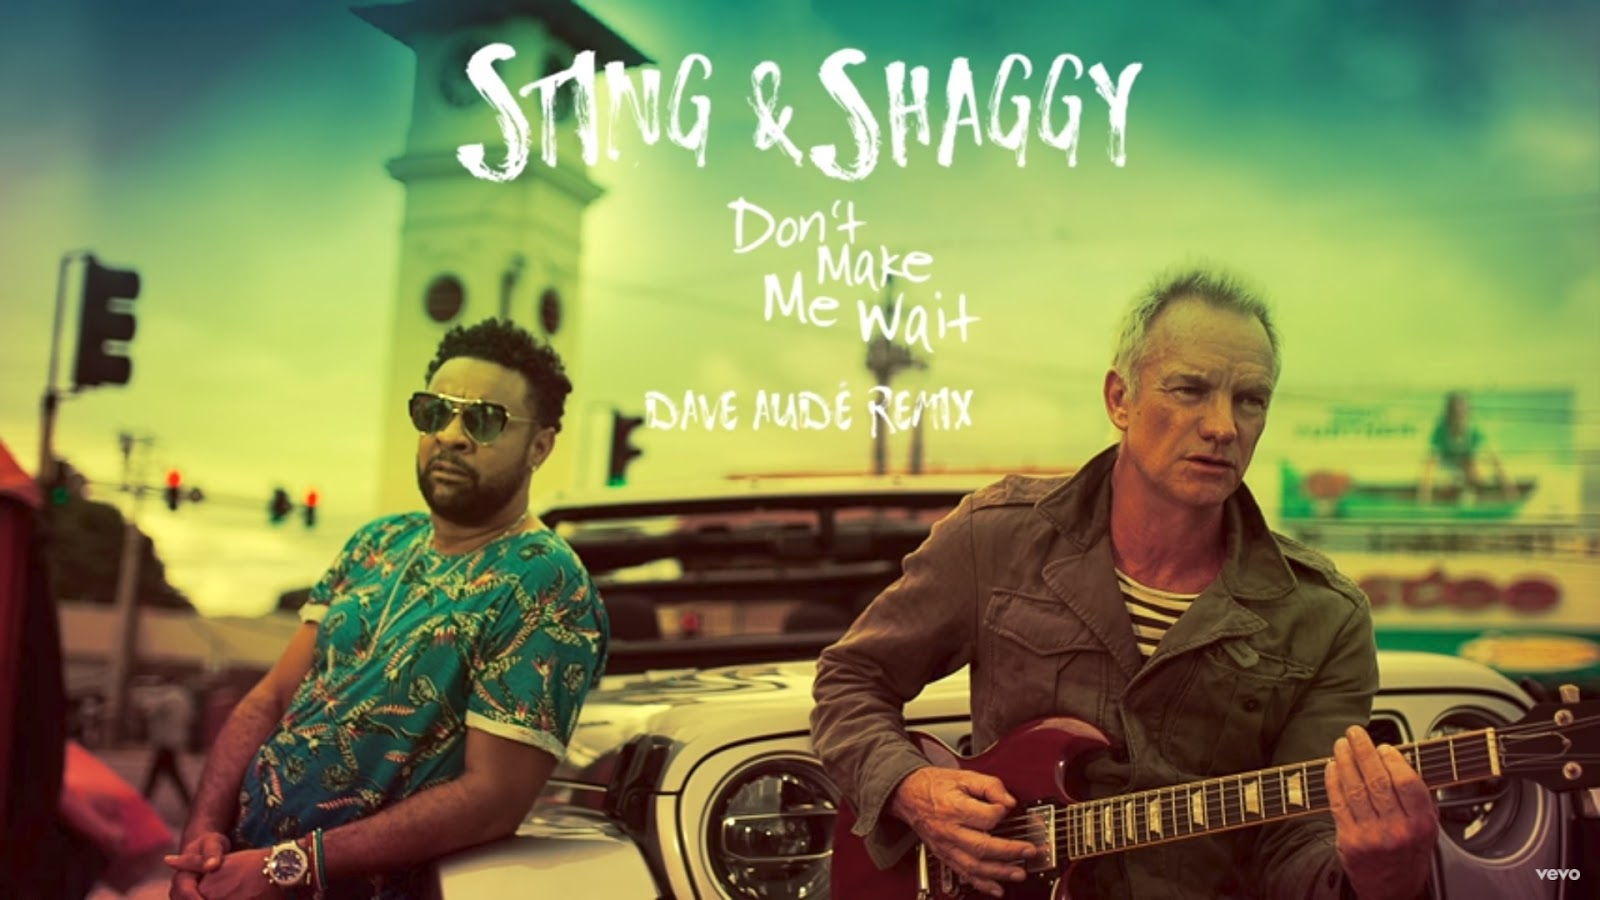 Sting, Shaggy - Don't Make Me Wait (Dave Audé #Remix) | 365 Days